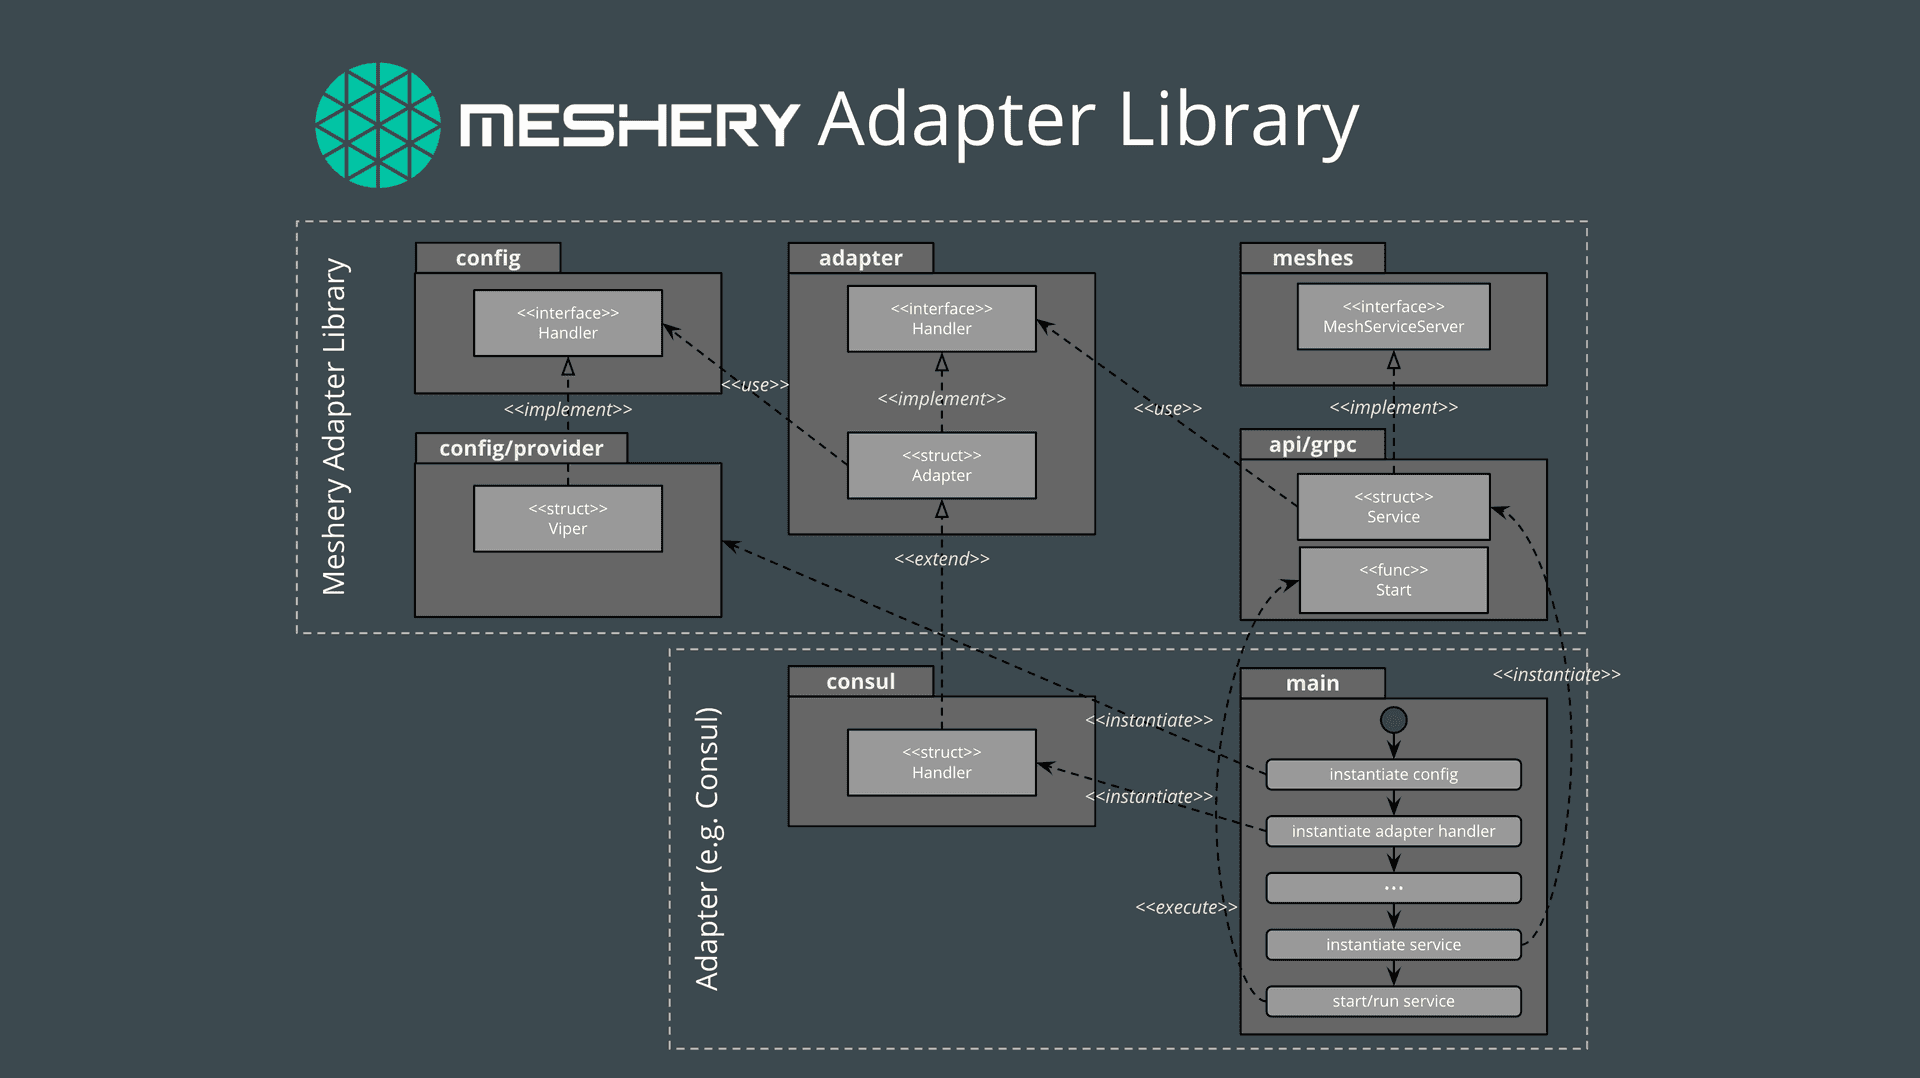 Introducing Meshkit and the Meshery Adapter Library